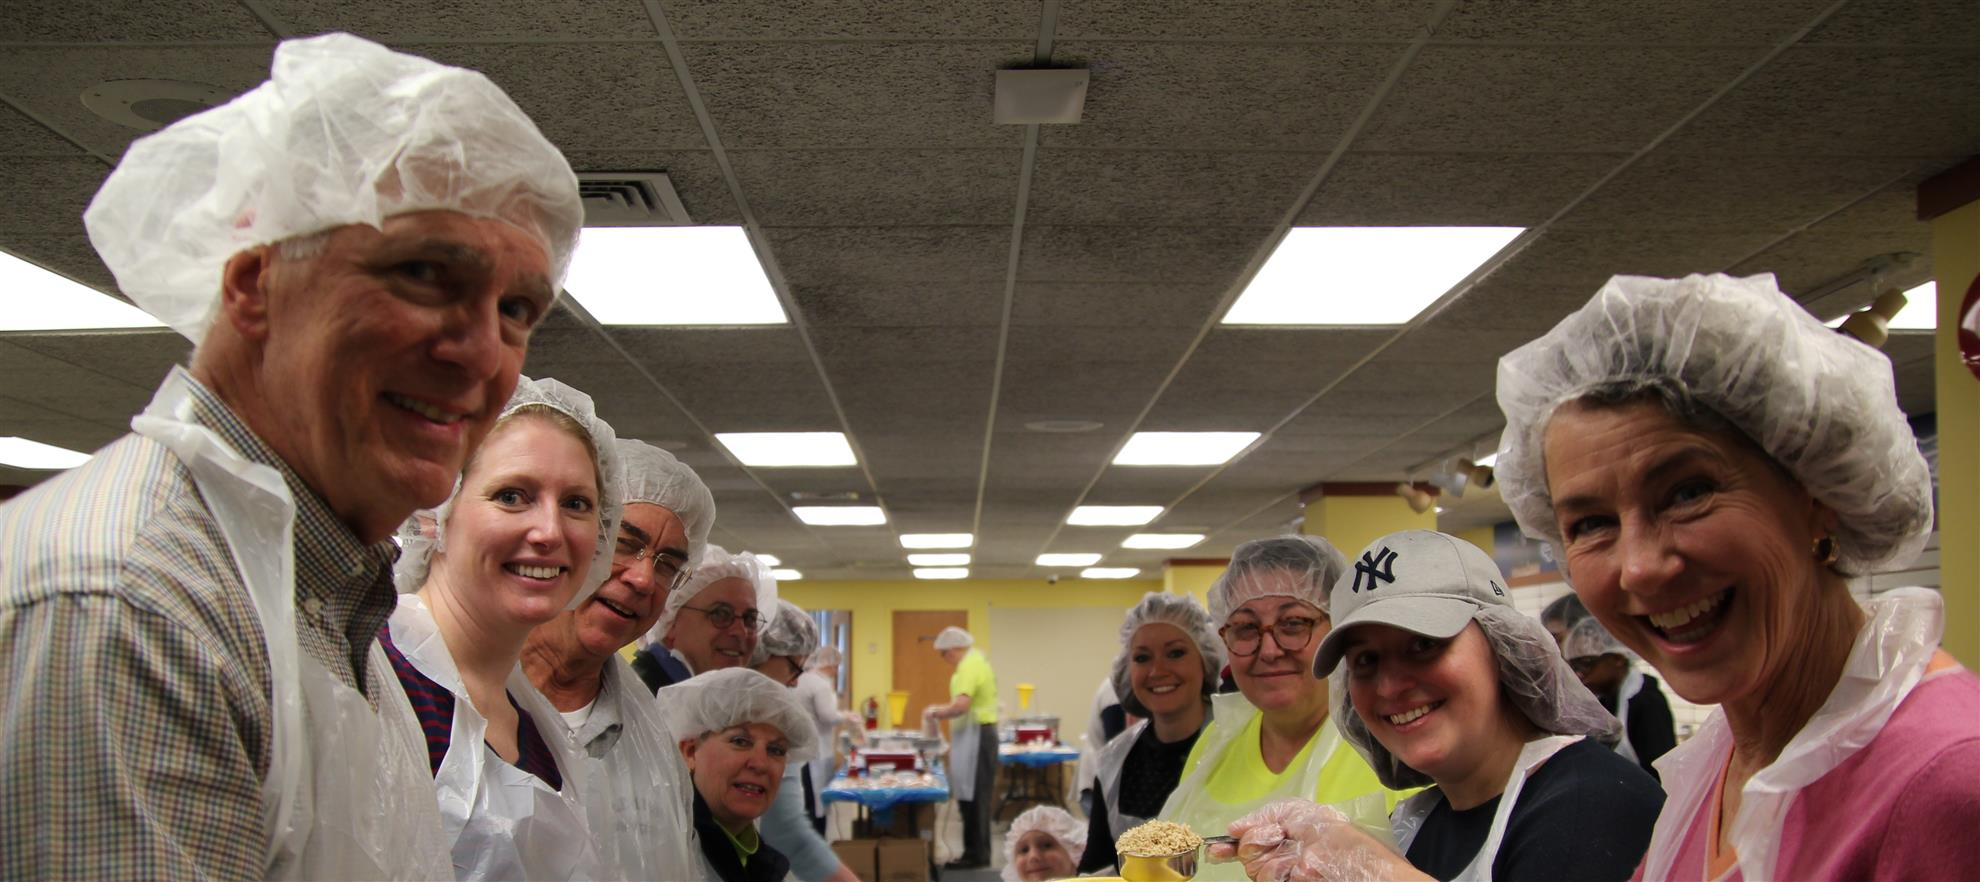 WE JOIN AREA CLUBS TO PACKAGE MEALS FOR COMMUNITY FOOD PANTRIES